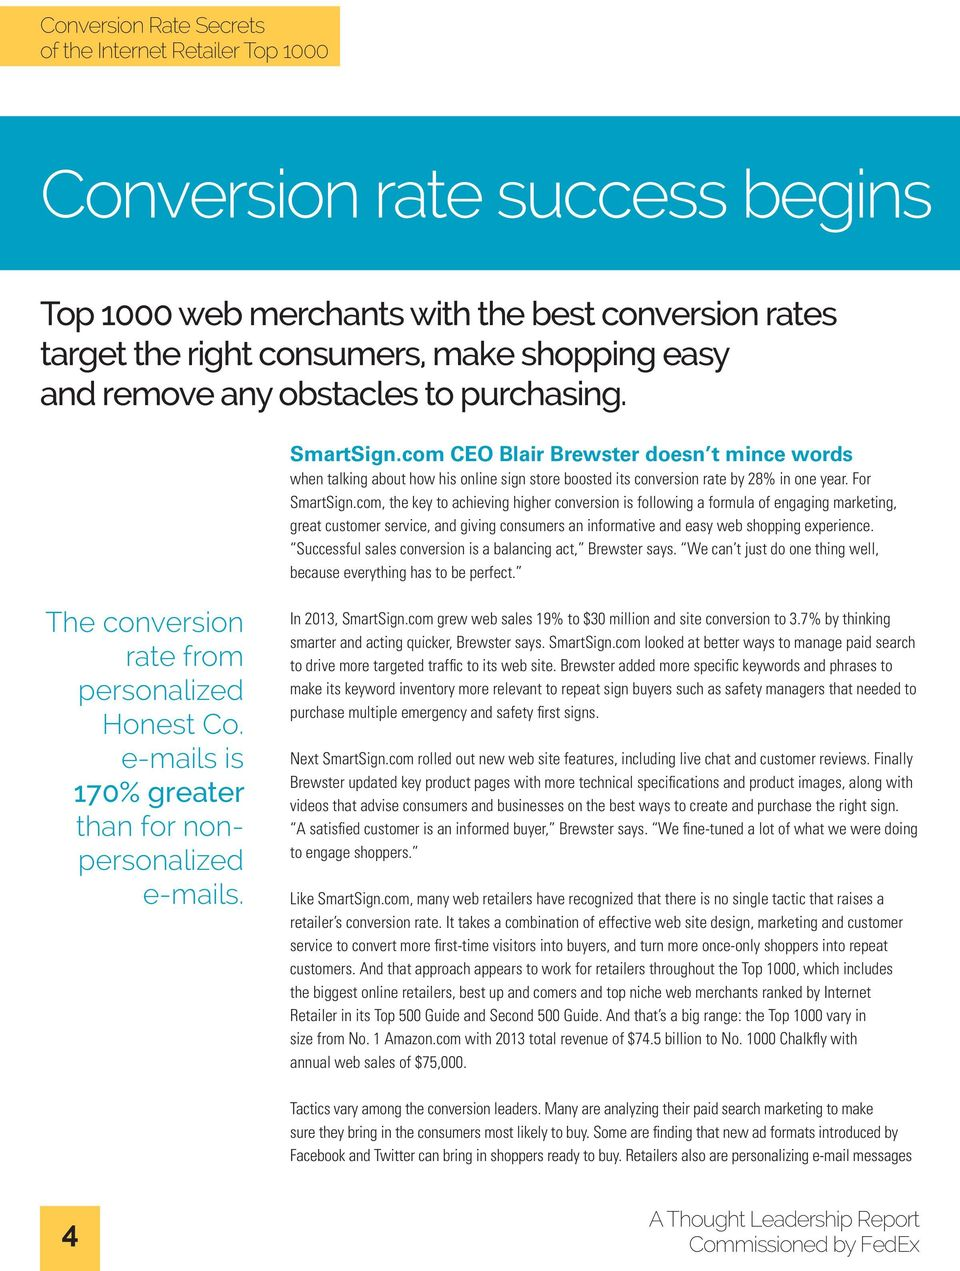 com, the key to achieving higher conversion is following a formula of engaging marketing, great customer service, and giving consumers an informative and easy web shopping experience.